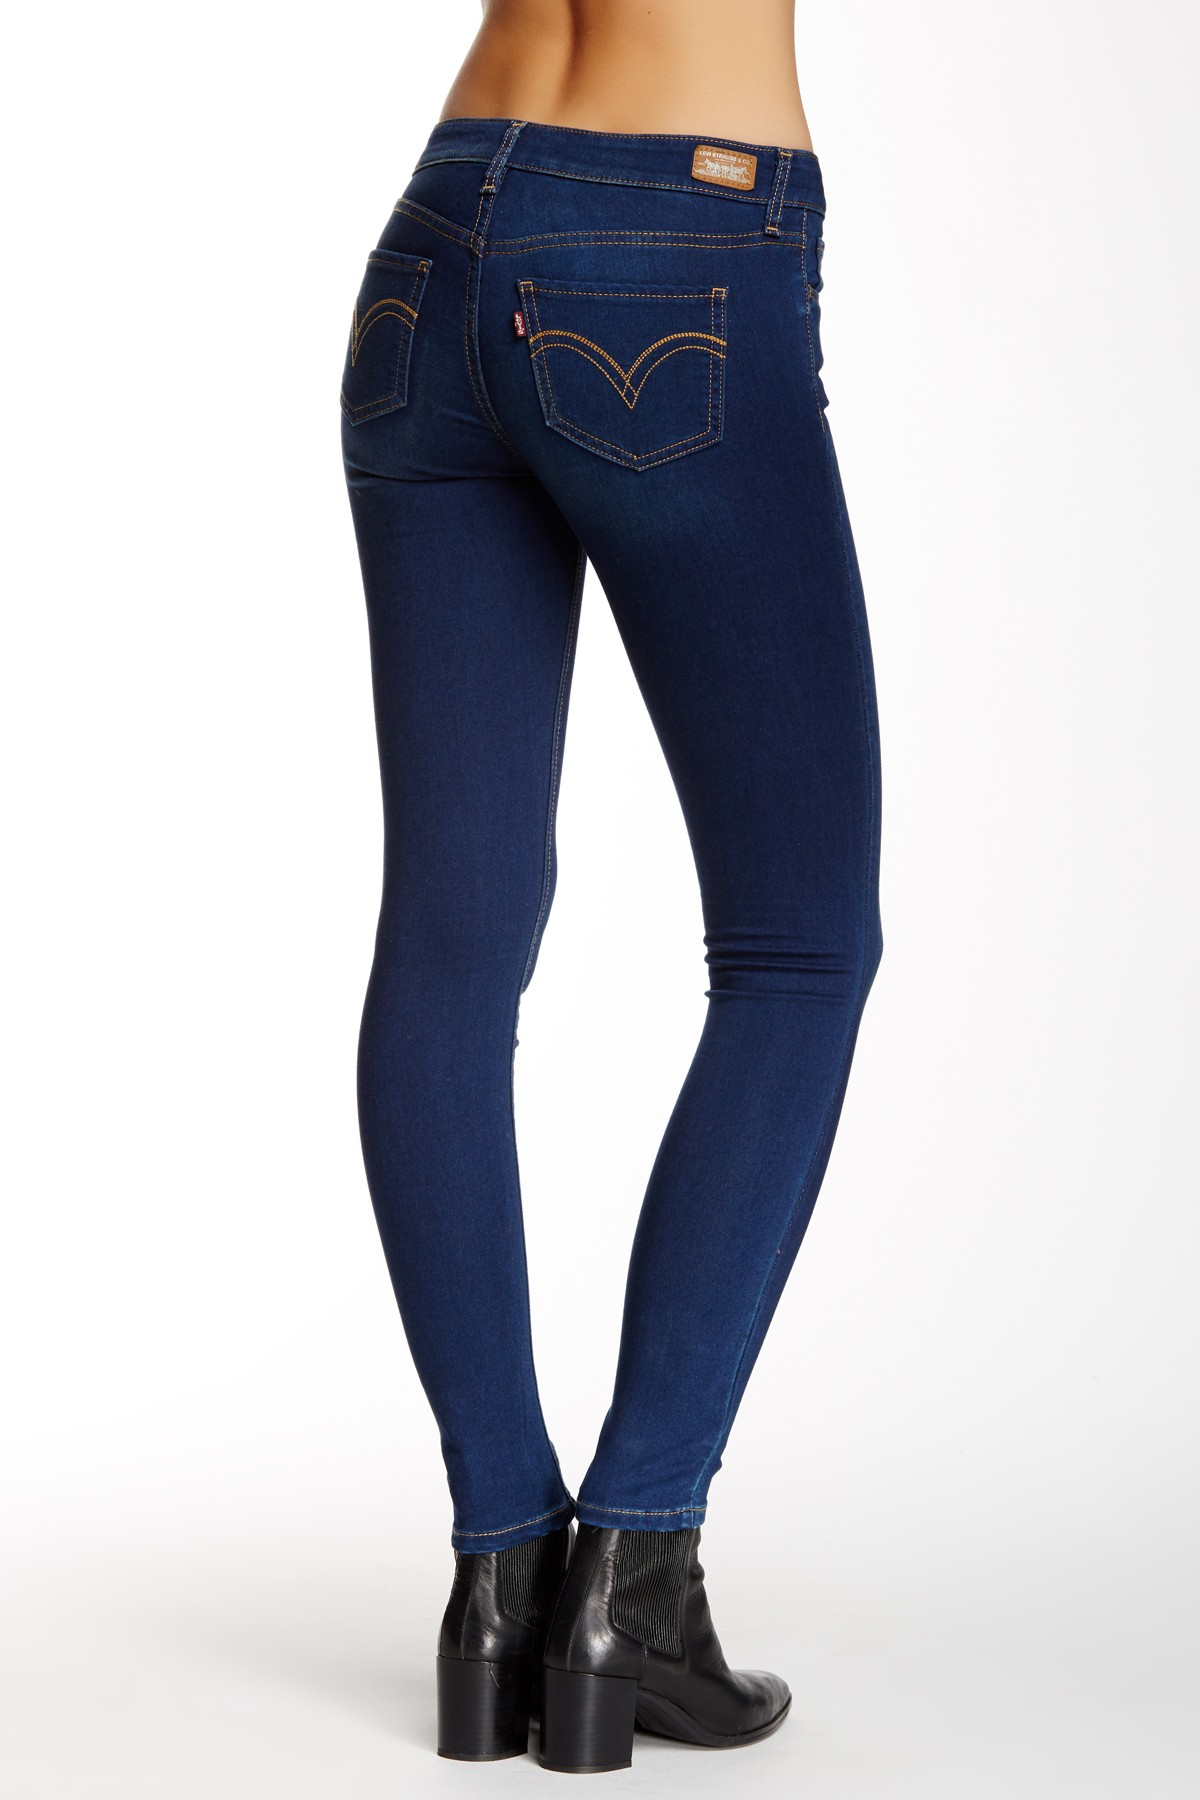 Levi's Juniors 535 Legging Jean - Blue Ravine (0254)